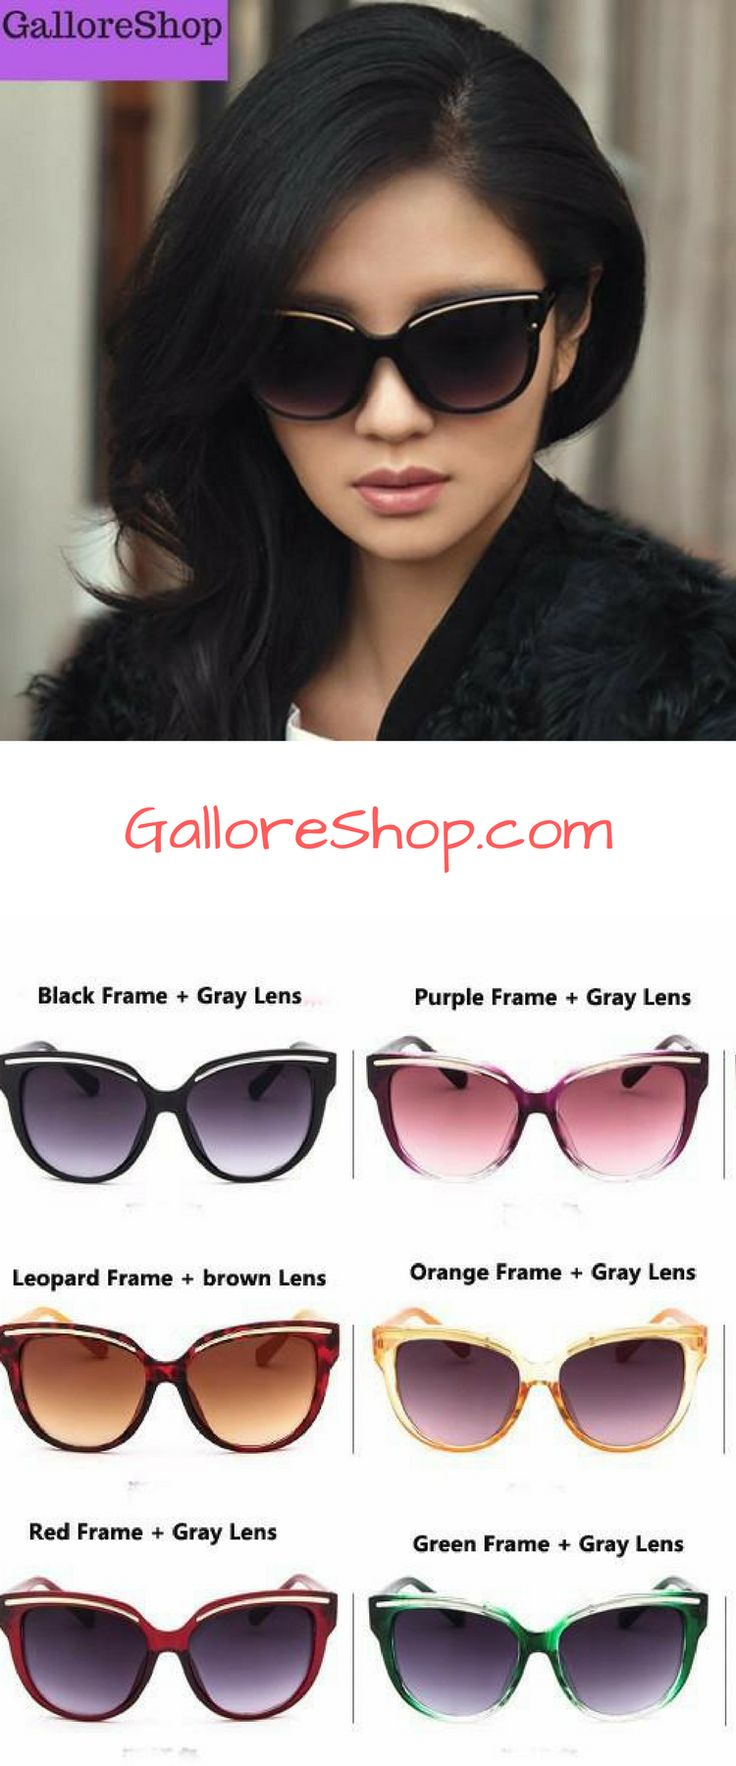 Protect your eyes with the most trending cat eye sunglasses for women on the market  cat eye sunglasses | cat eye sunglasses 2018 | cat eye sunglasses women | *** Cat Eye Sunglasses *** | Cat Eye Sunglasses | Cat Eye Sunglasses | cat eye eyewear eyeglasses | cat eye eyewear |cat eye shades | cat eye shades sunglasses | cat eye shades ray bans | Cat-Eye Shades   #cateye #Cat #eye #sunglasses #eyewearfashion #trendsetter #womensfashion